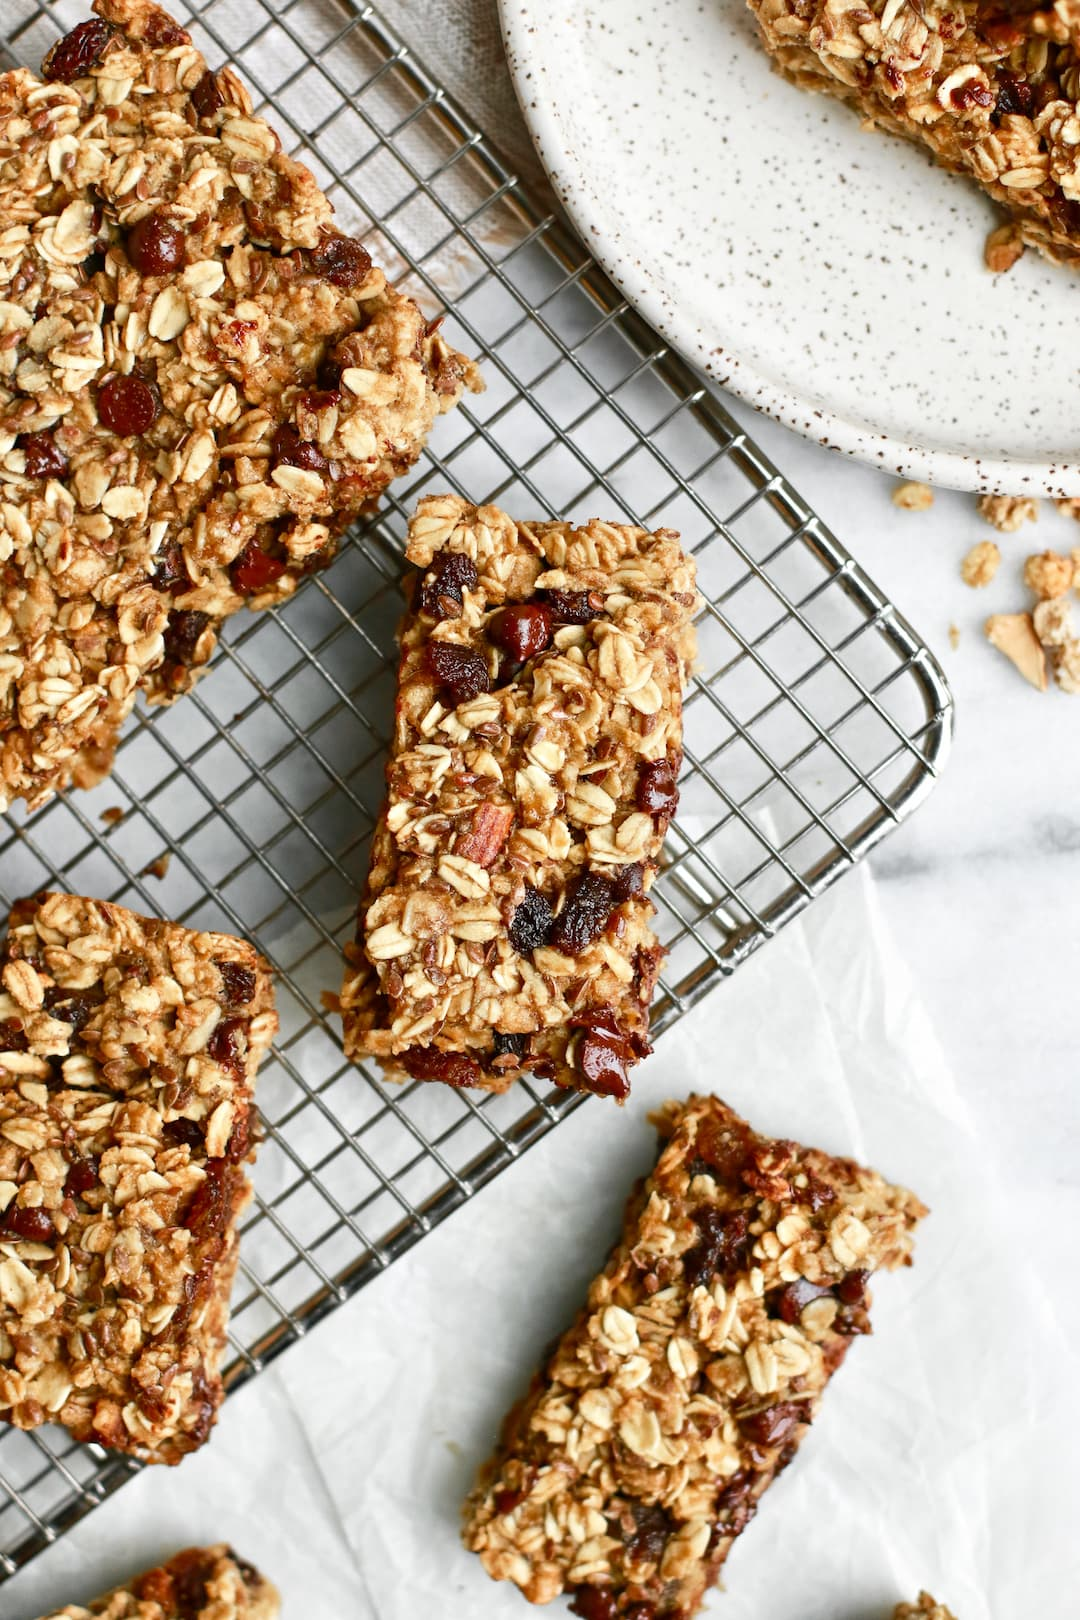 Easy and Healthy Chocolate Chip Granola Bars